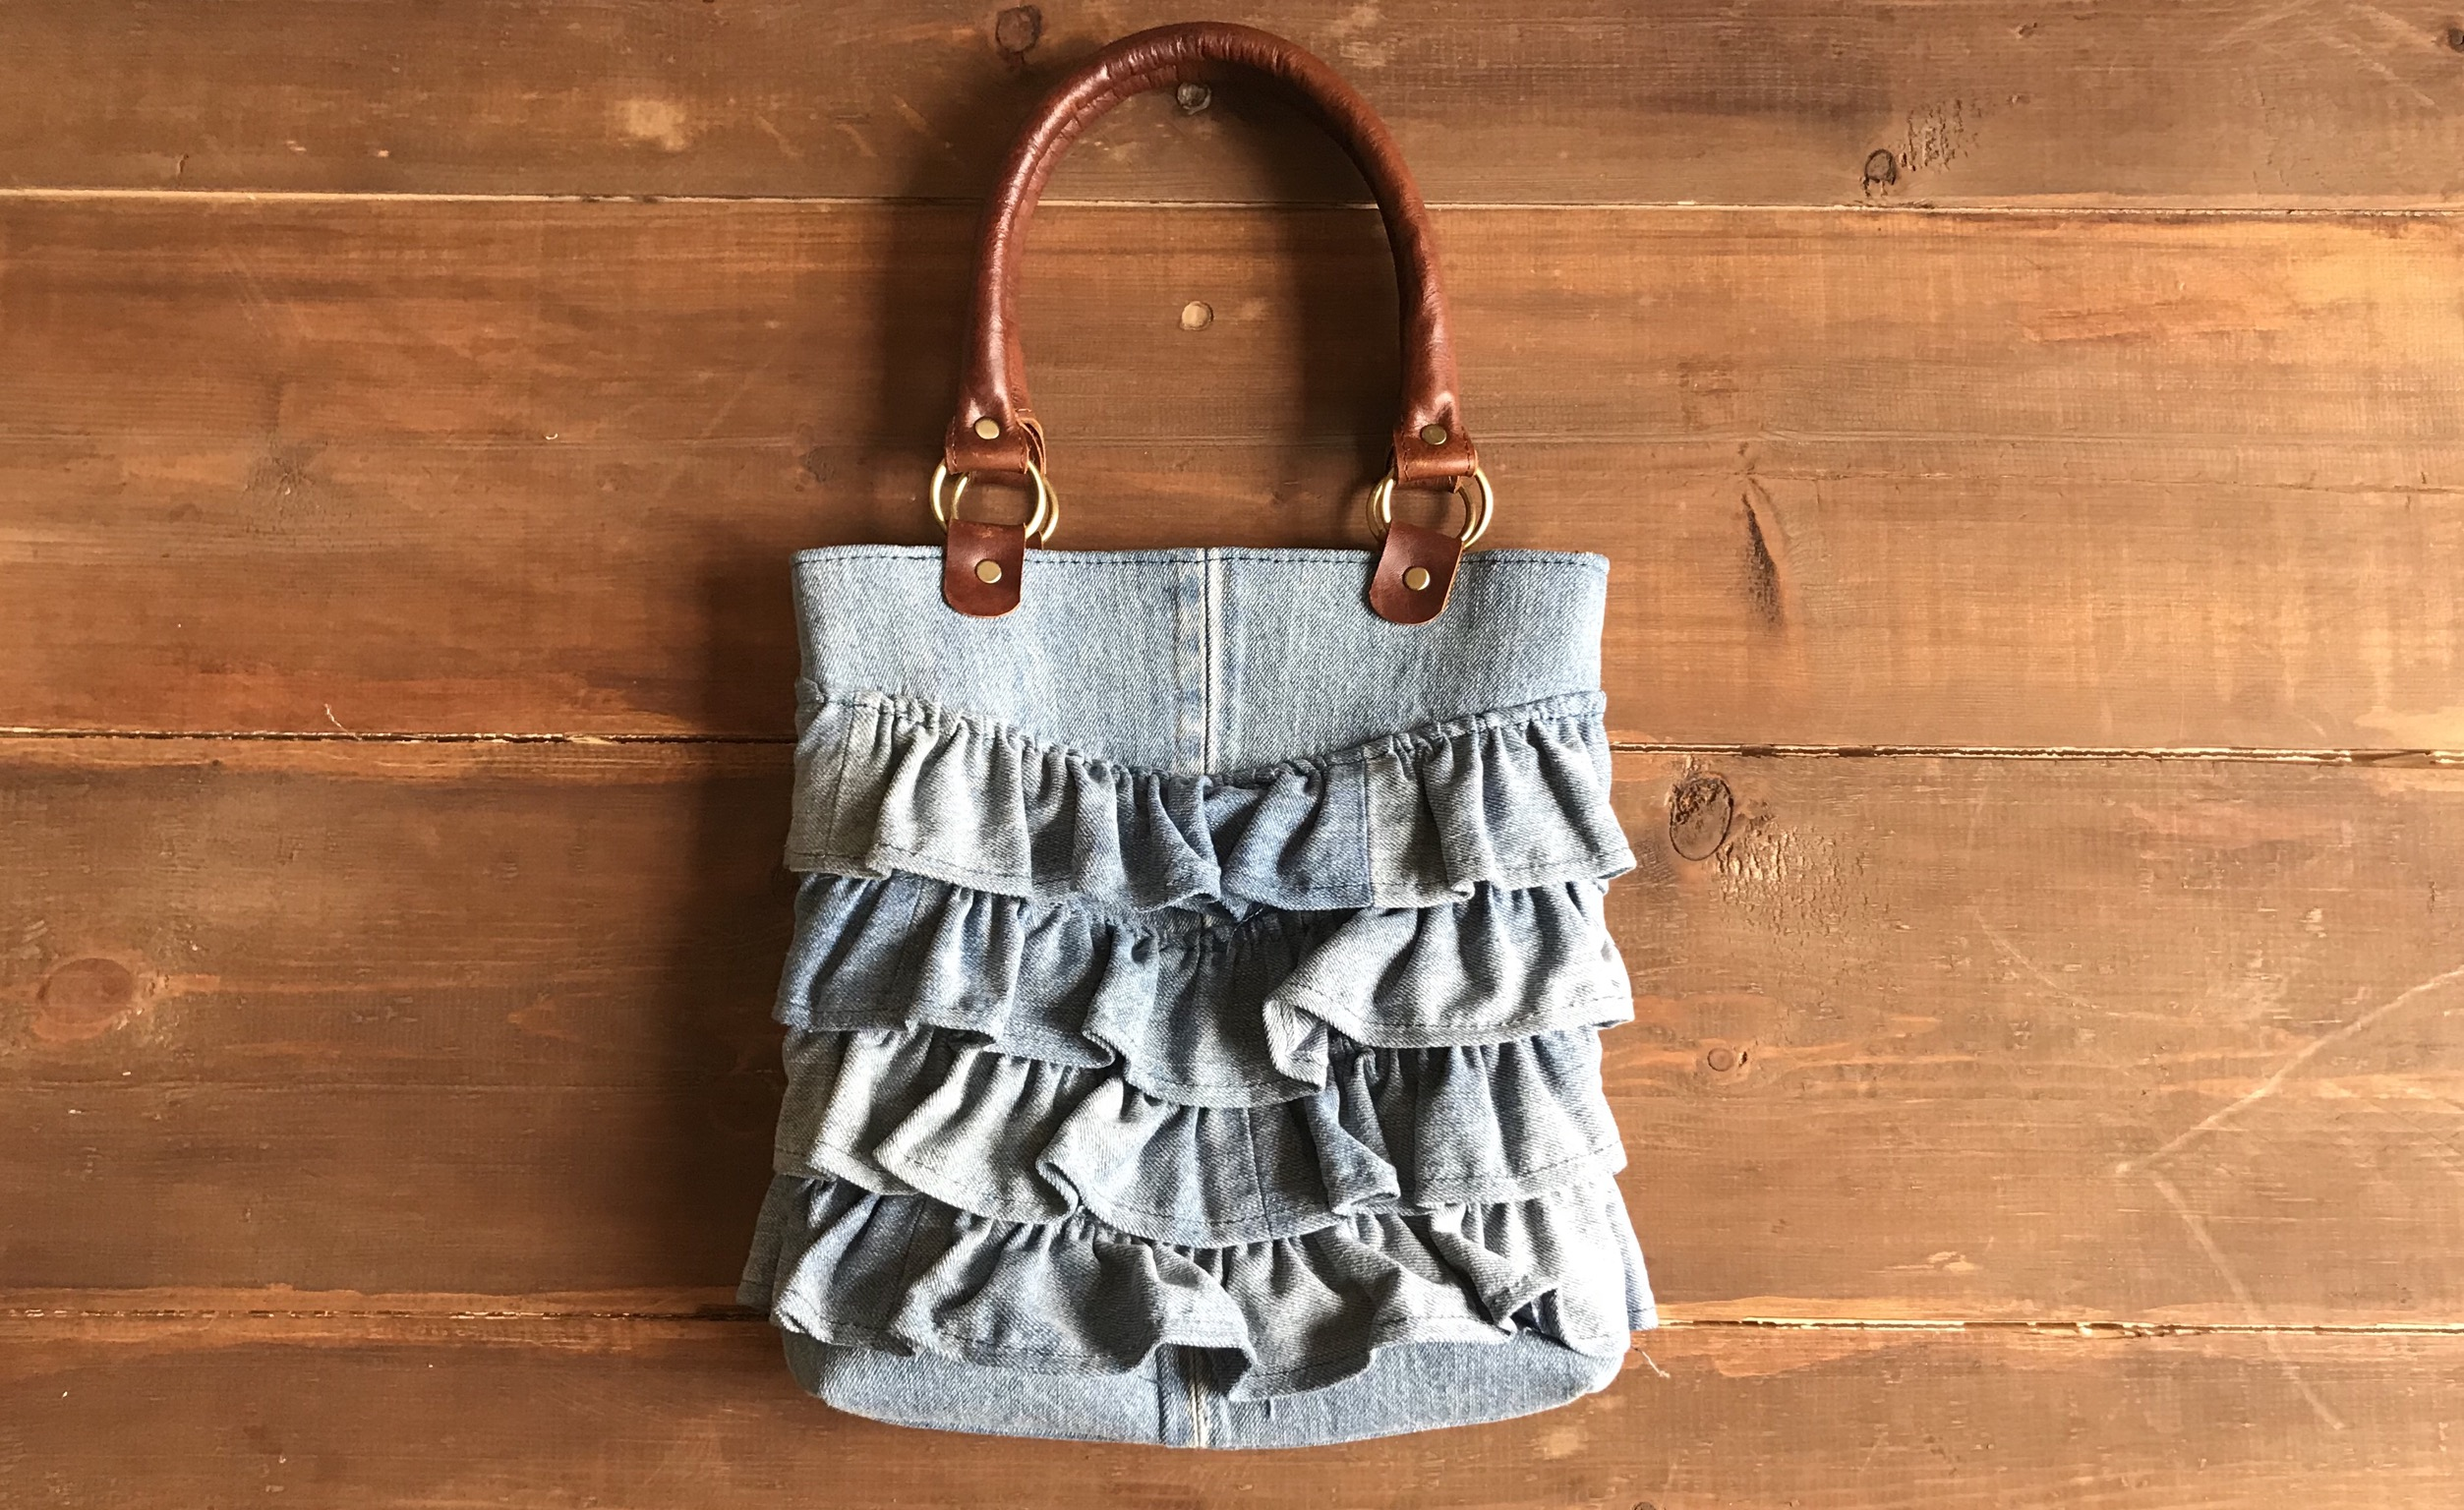 Jeans bag with franges